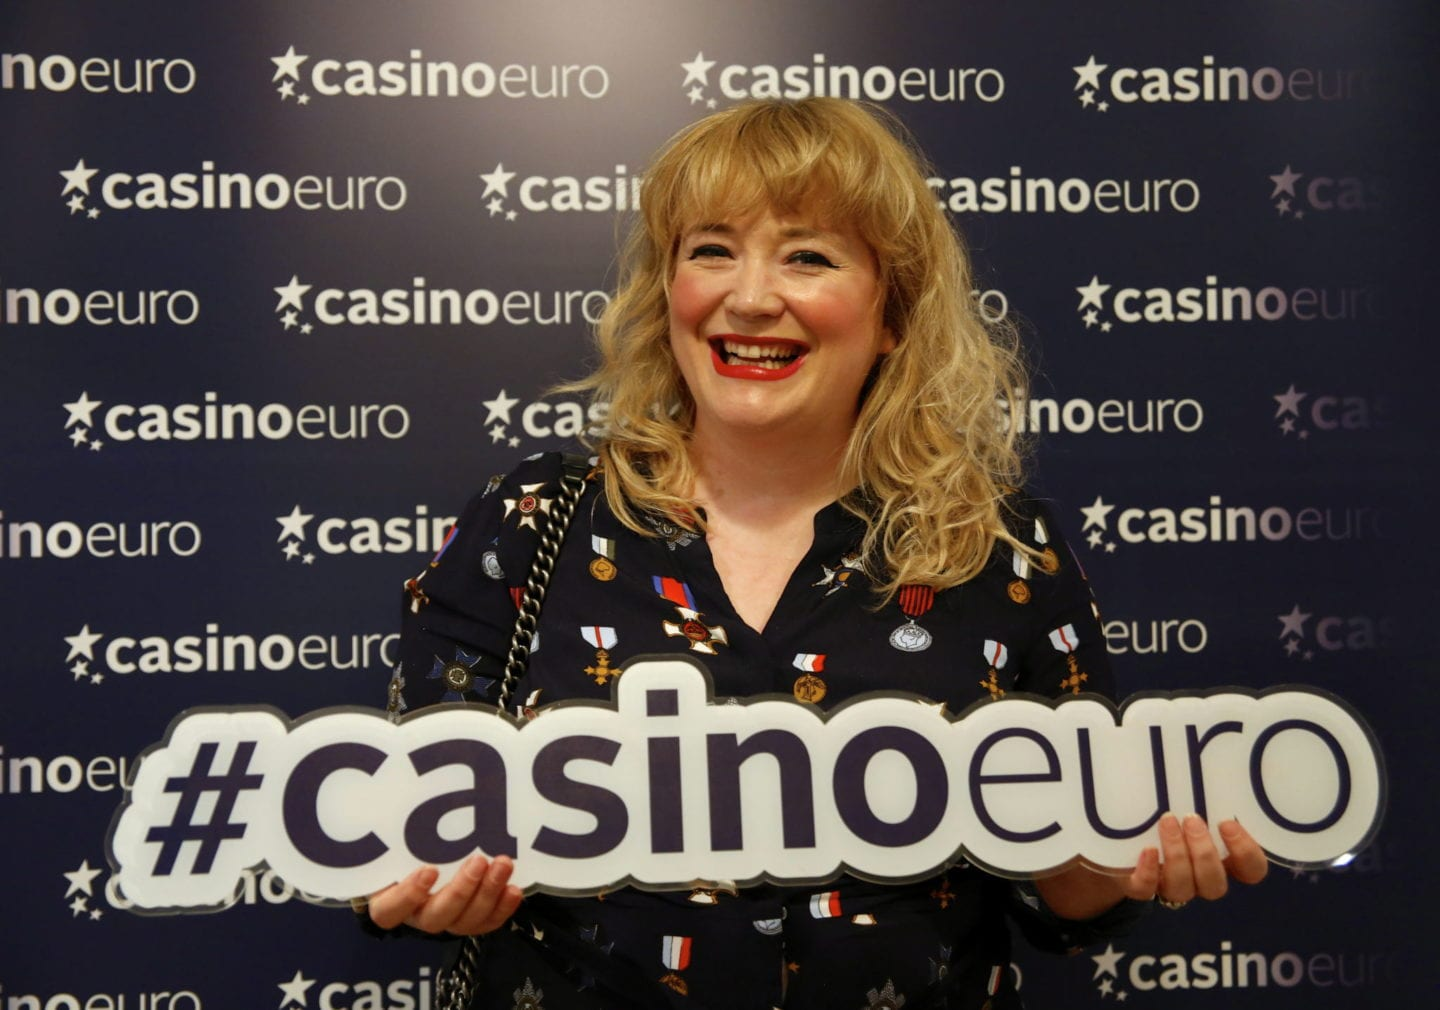 eurocasino event london celebrity